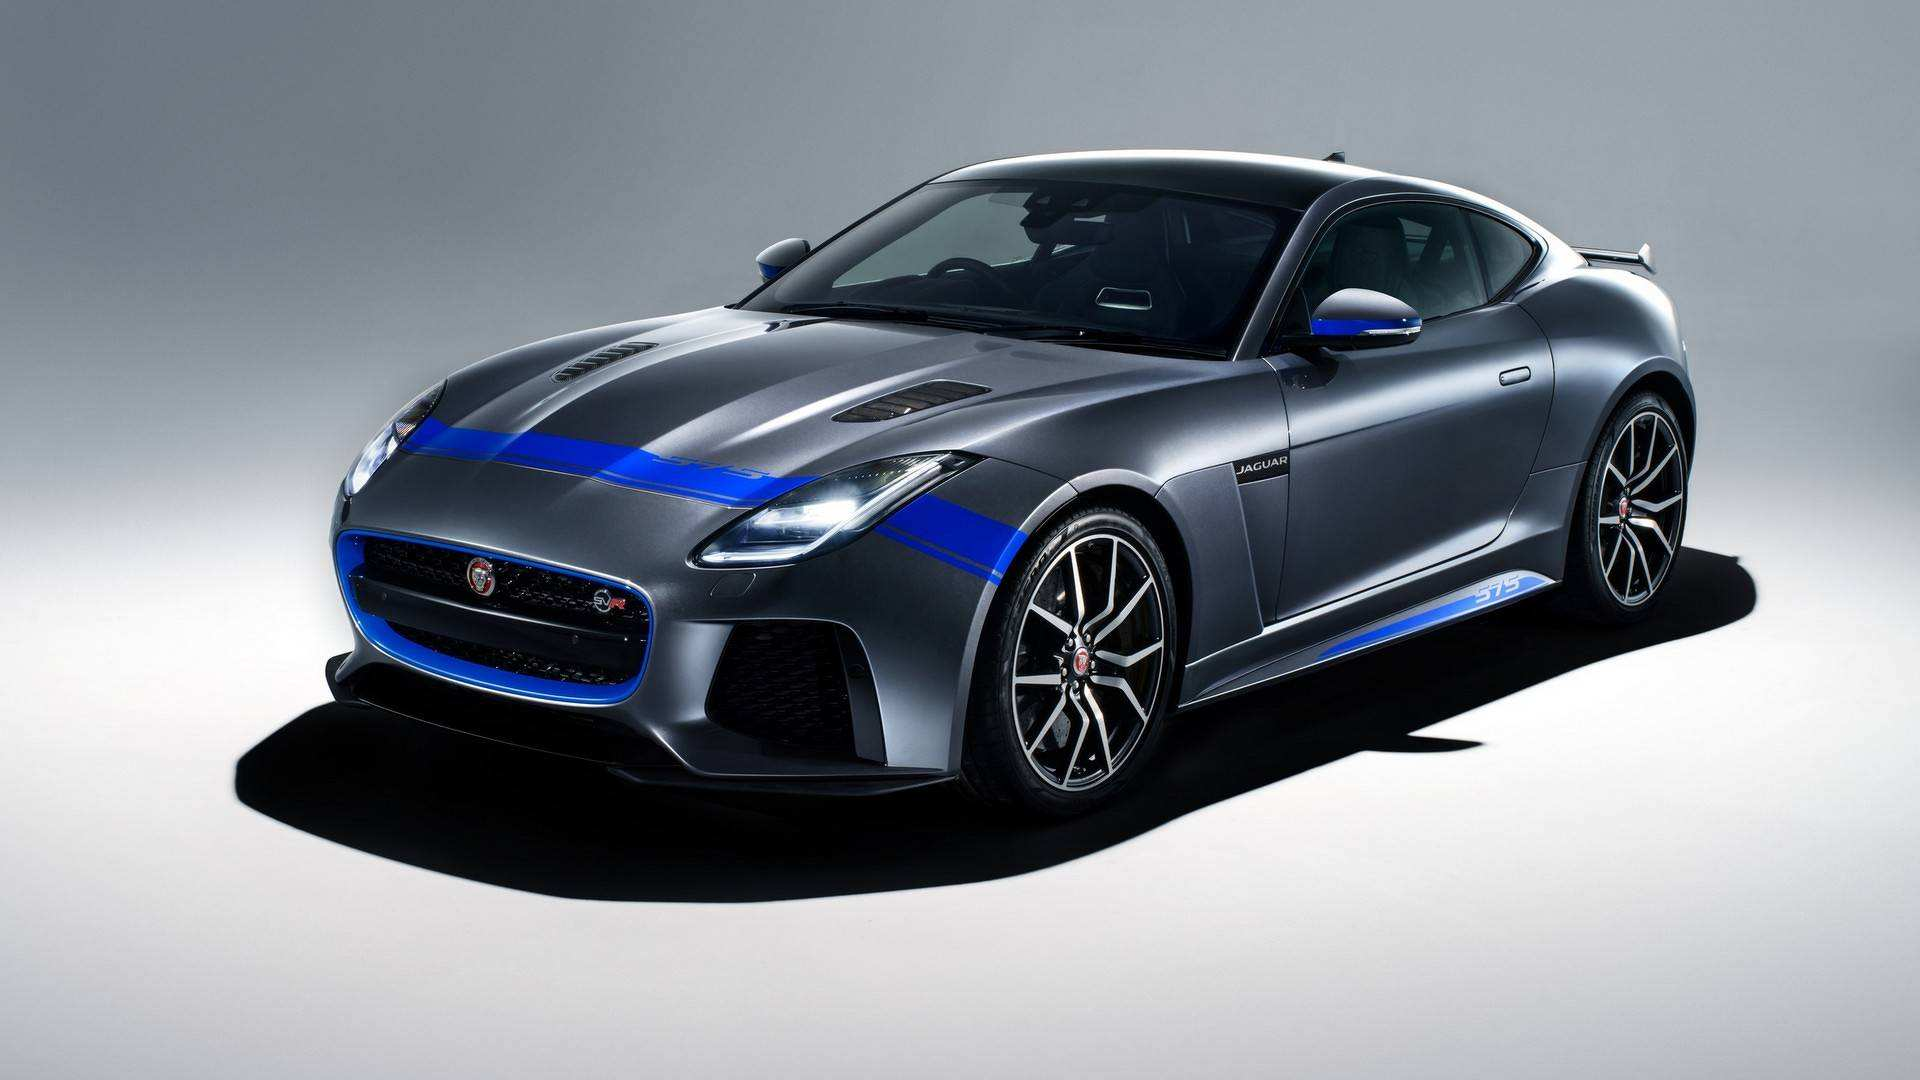 22 Gallery of 2020 Jaguar F Type Coupe Exterior with 2020 Jaguar F Type Coupe